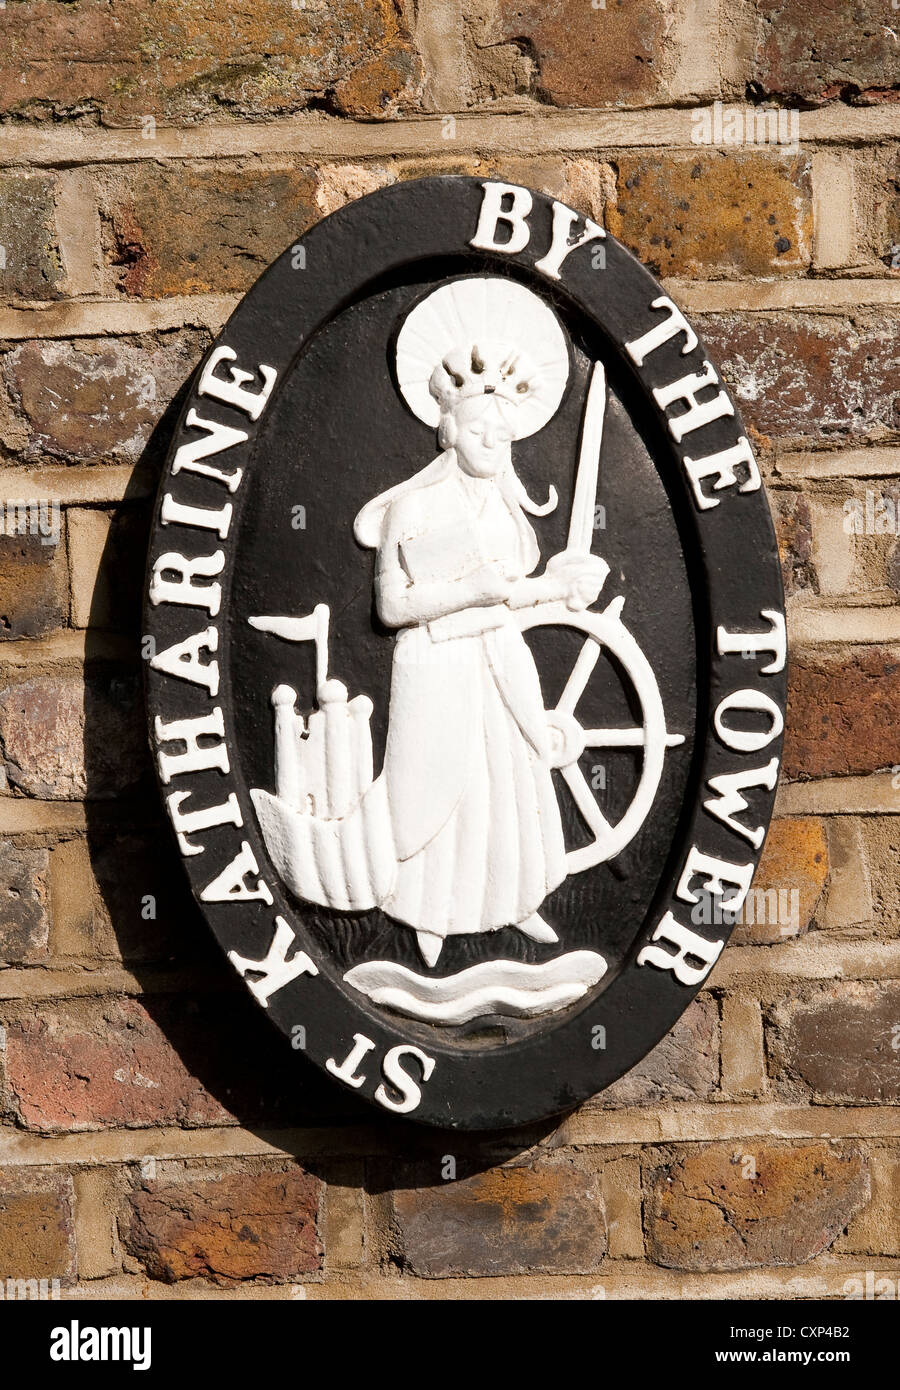 Plaque in St Katharine Docks in the Docklands area of London, England. - Stock Image